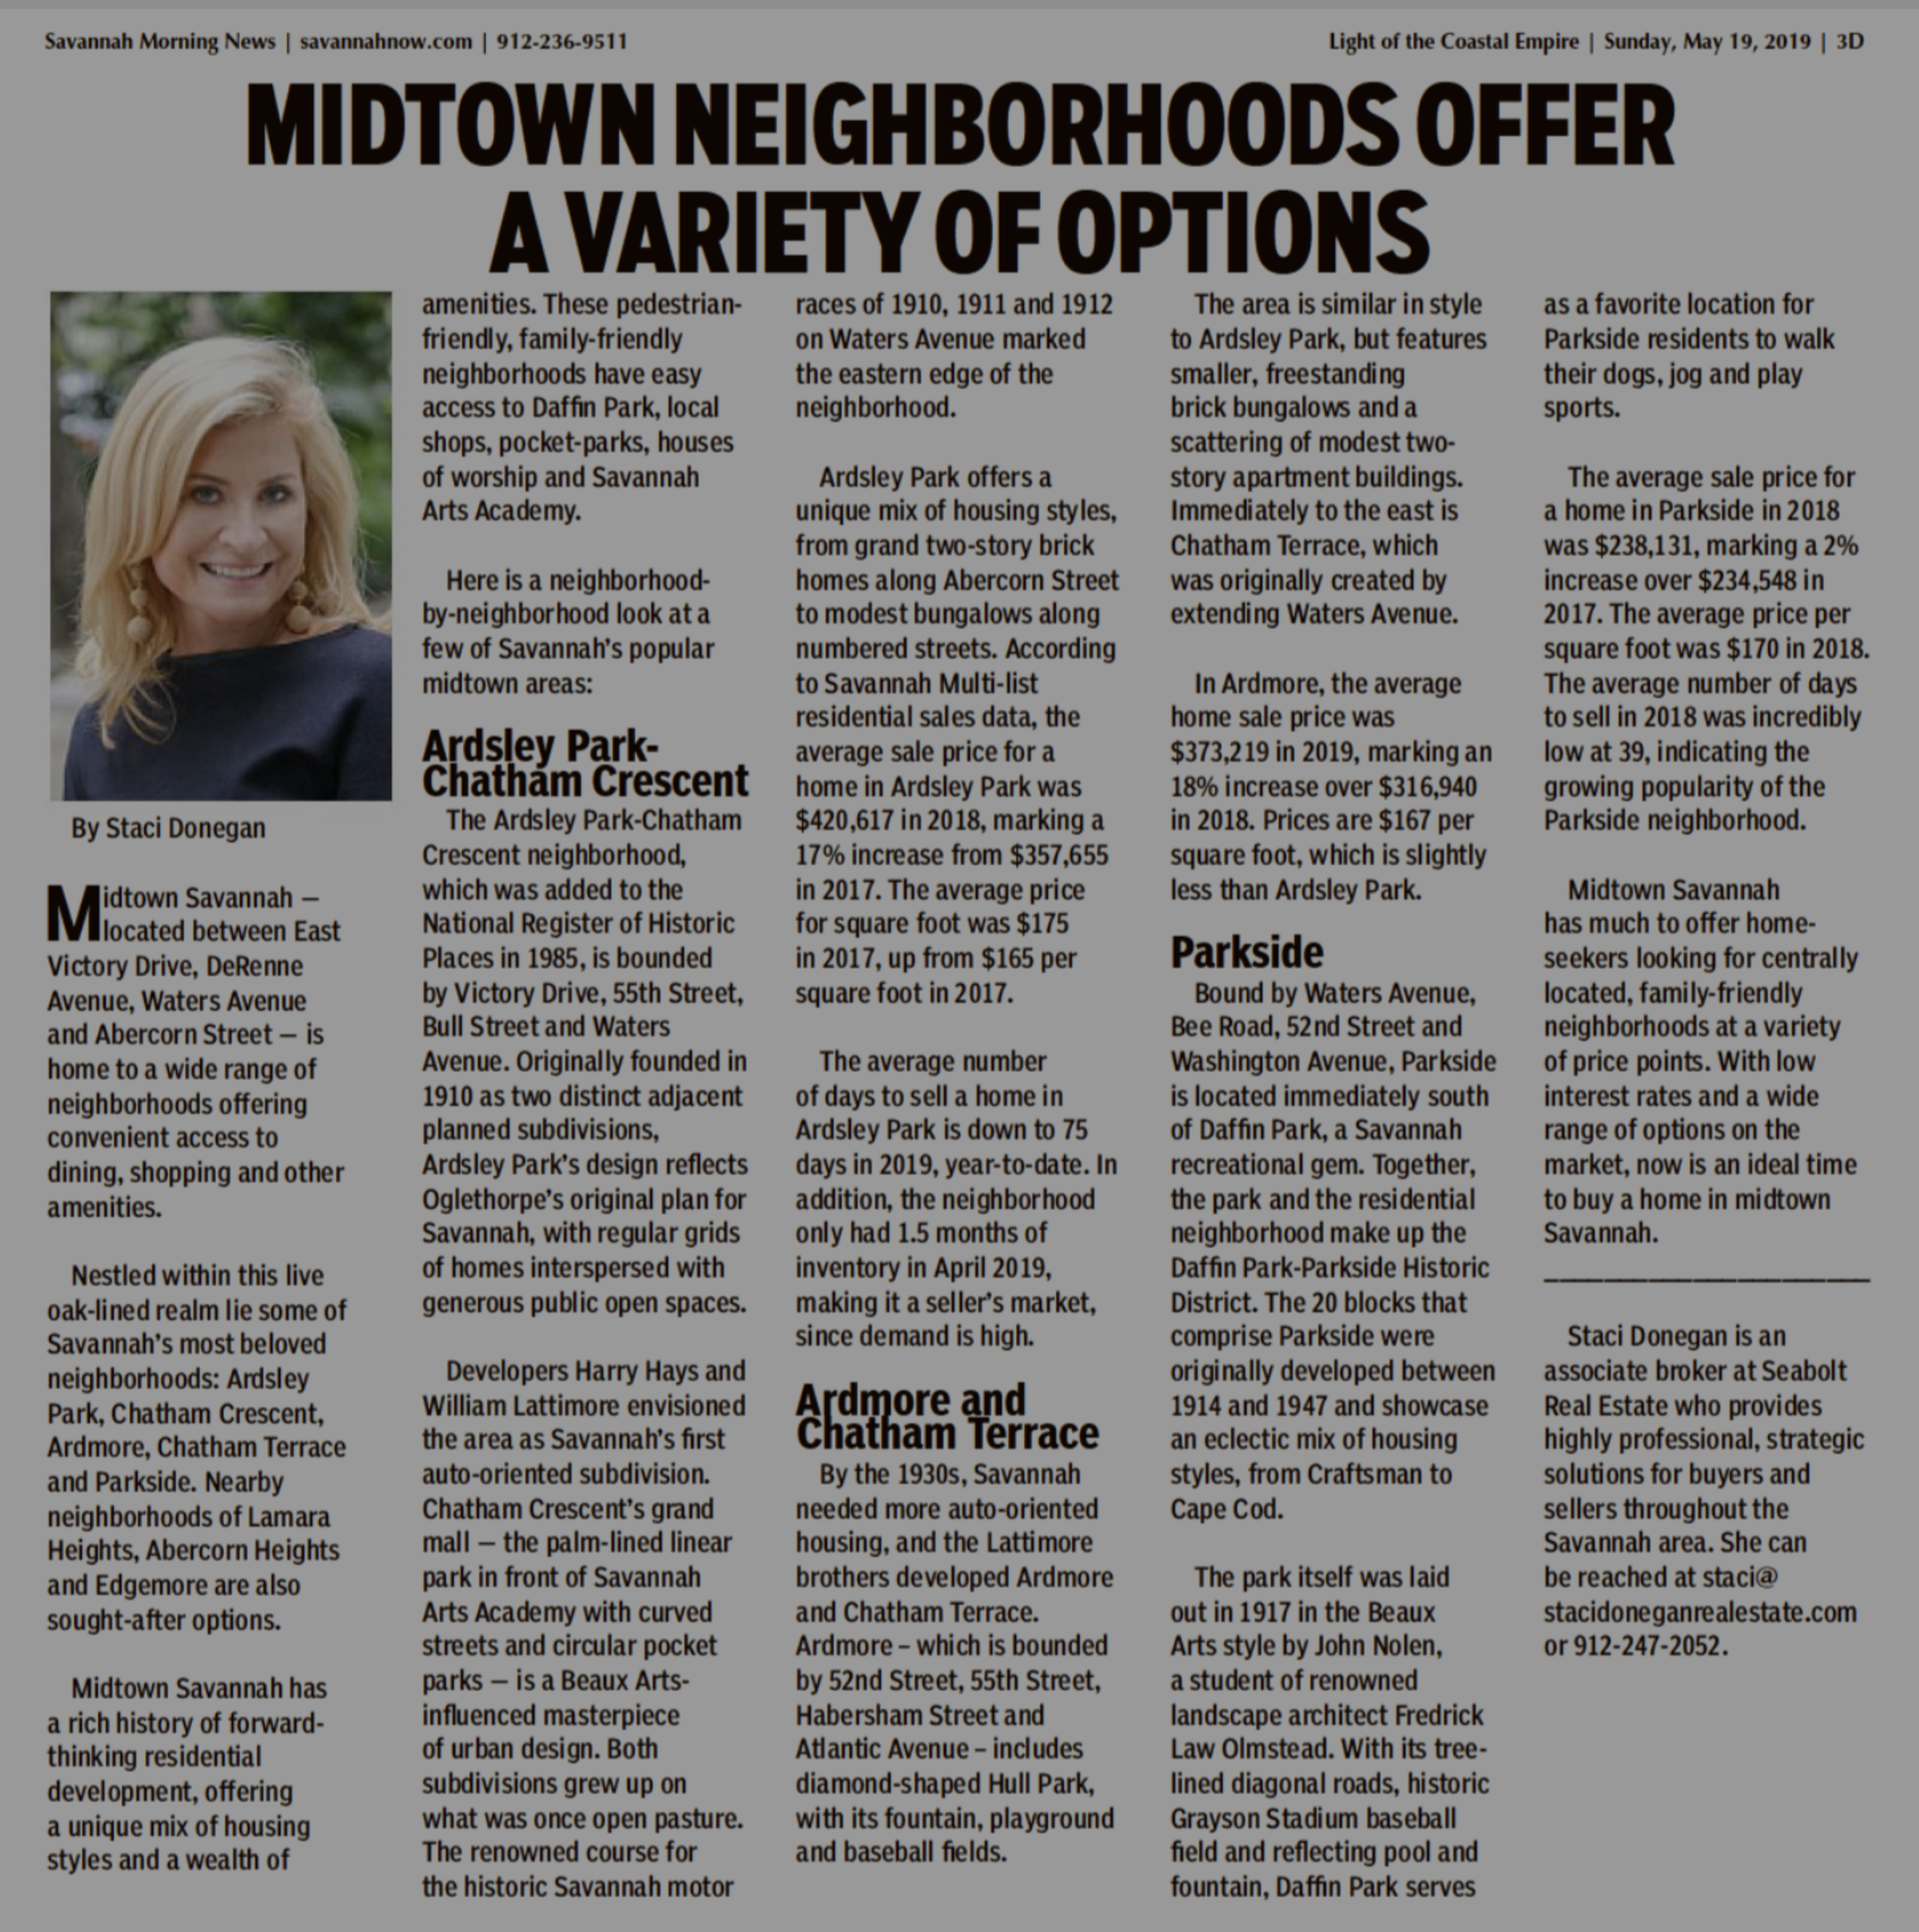 MIDTOWN NEIGHBORHOODS OFFER A VARIETY OF OPTIONS